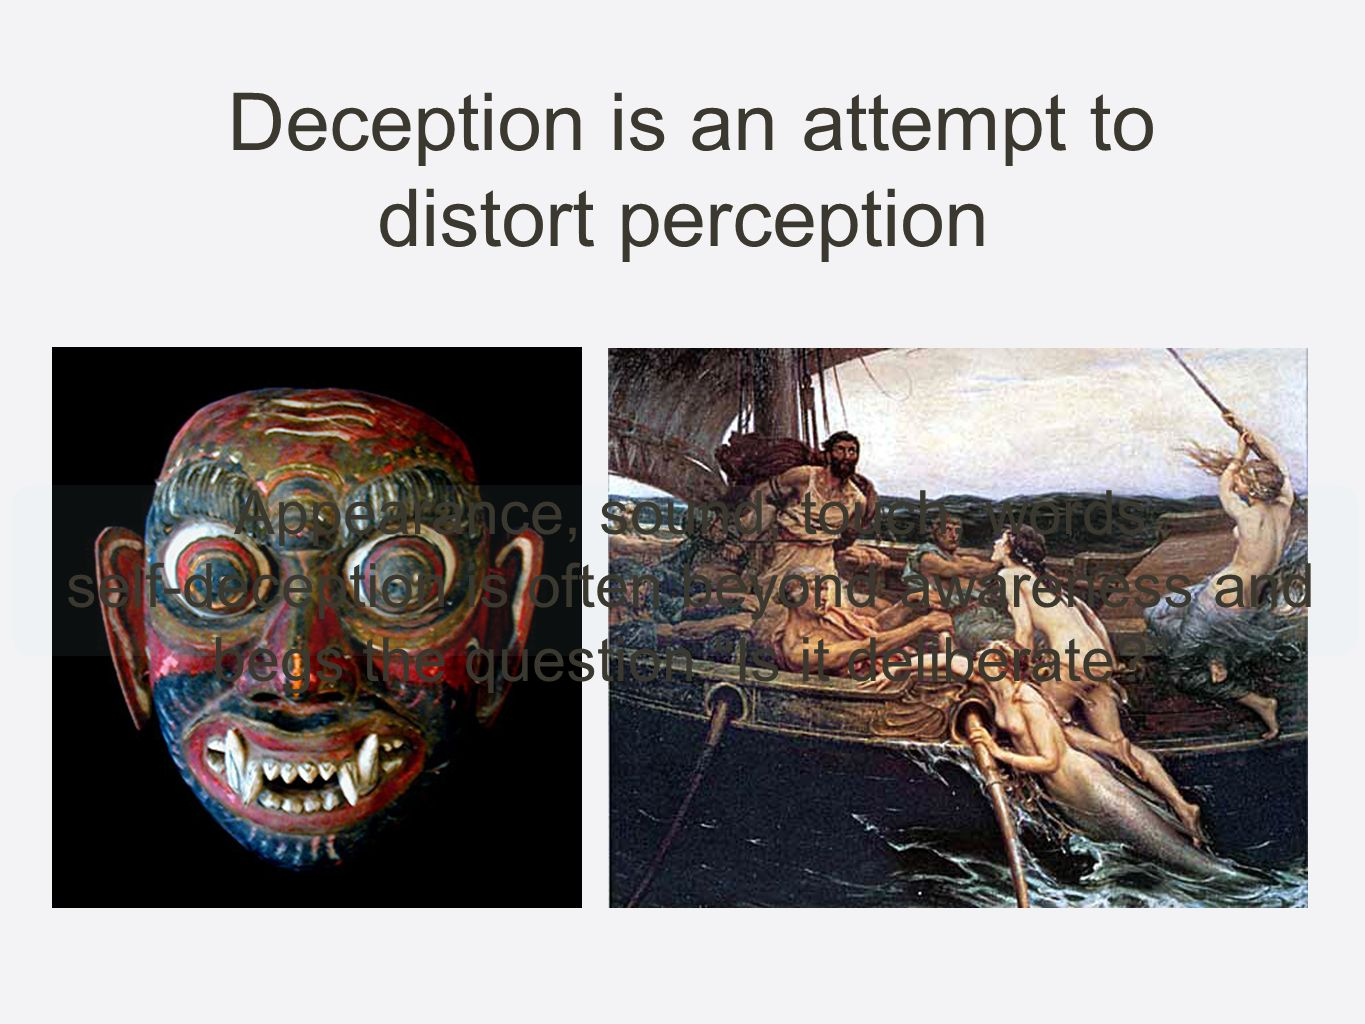 Deception is an attempt to distort perception